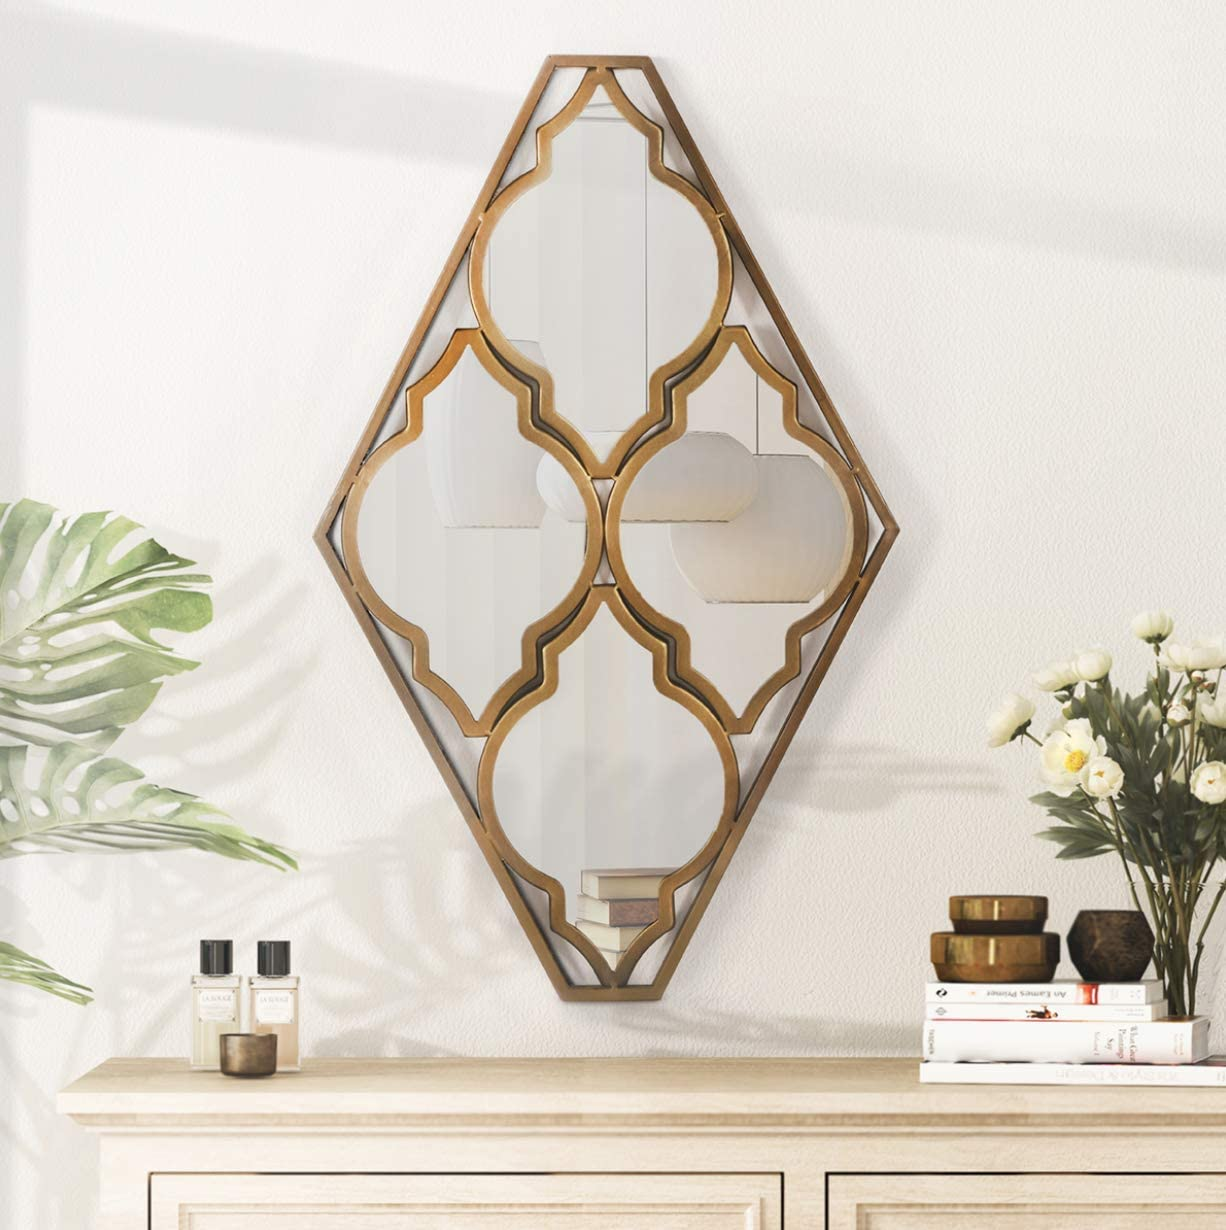 Decorative Bronze Gold Wall Mounted Accent H Mail order 29.7'' 18 x Max 80% OFF Mirrors